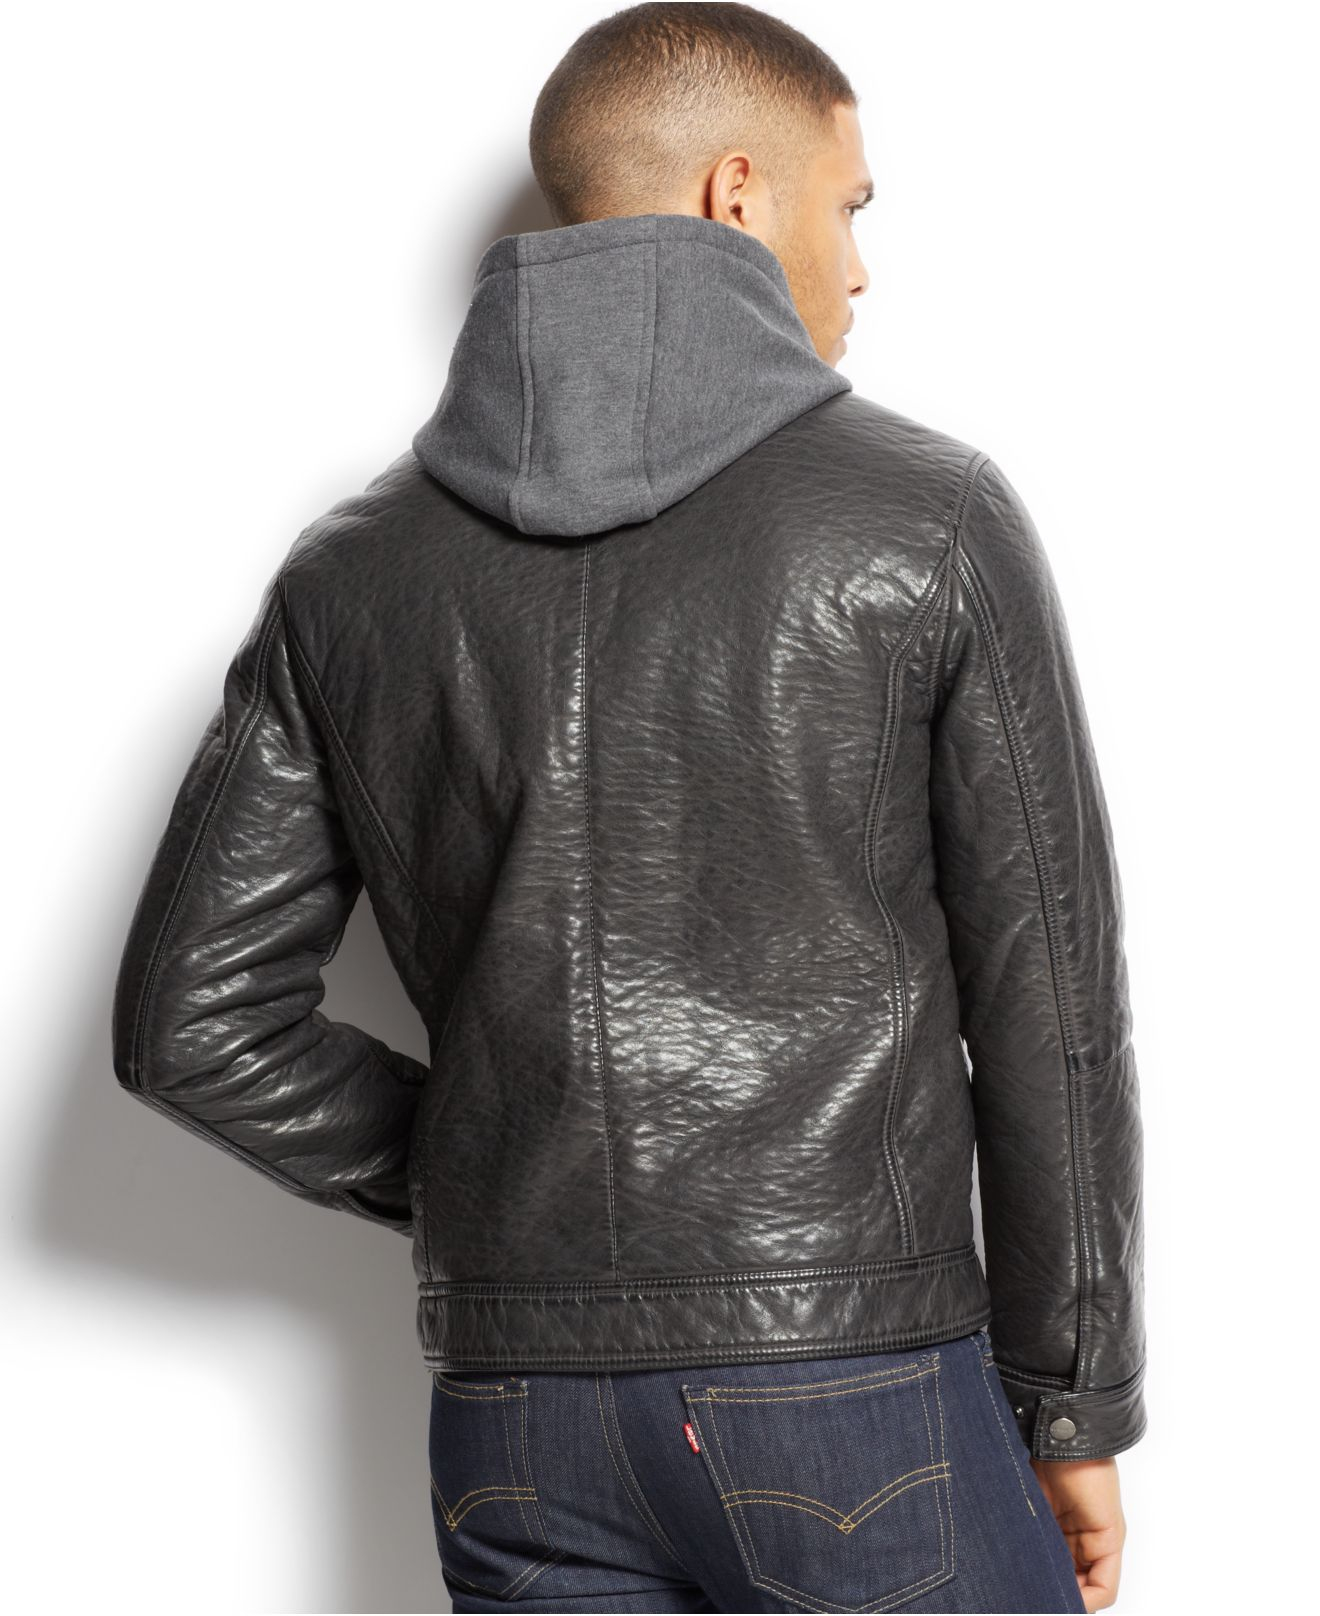 The Classic Bomber suitable for big and tall men is from Falcon Bay. A stylish jacket that is water repellent, ideal for use in winter, spring, or fall.